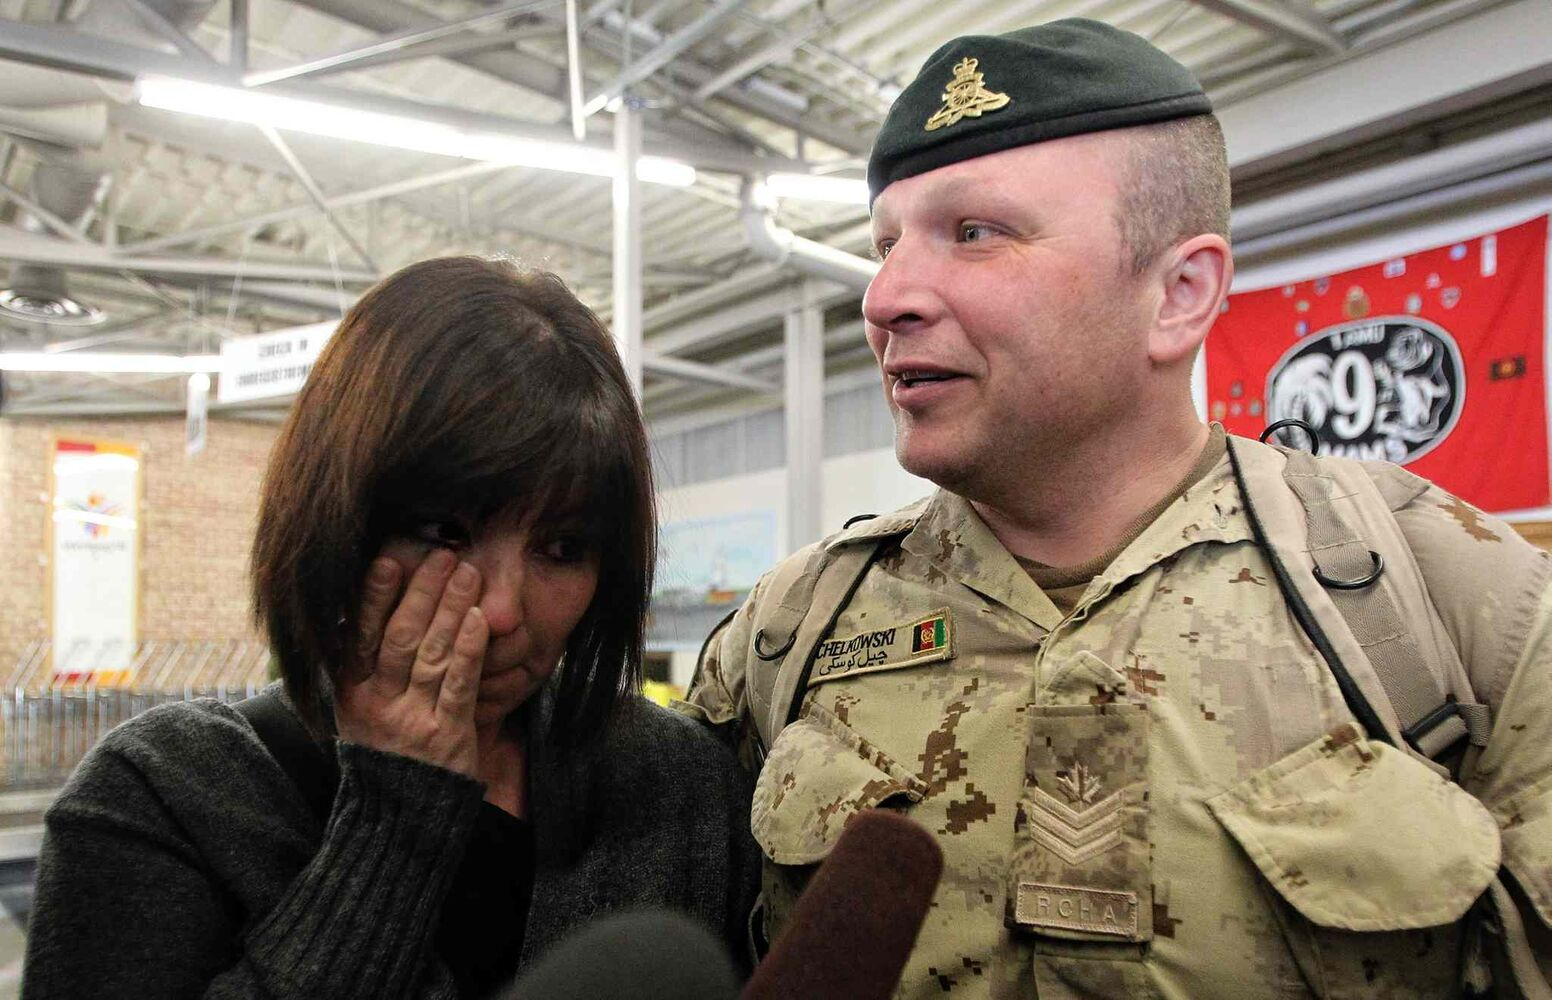 Sgt. David Chelkowski of the 1st RCHA is greeted by his wife Jennifer, who wipes away a tear Monday after greeting her husband at 17 Wing. (Mike Deal / Winnipeg Free Press)